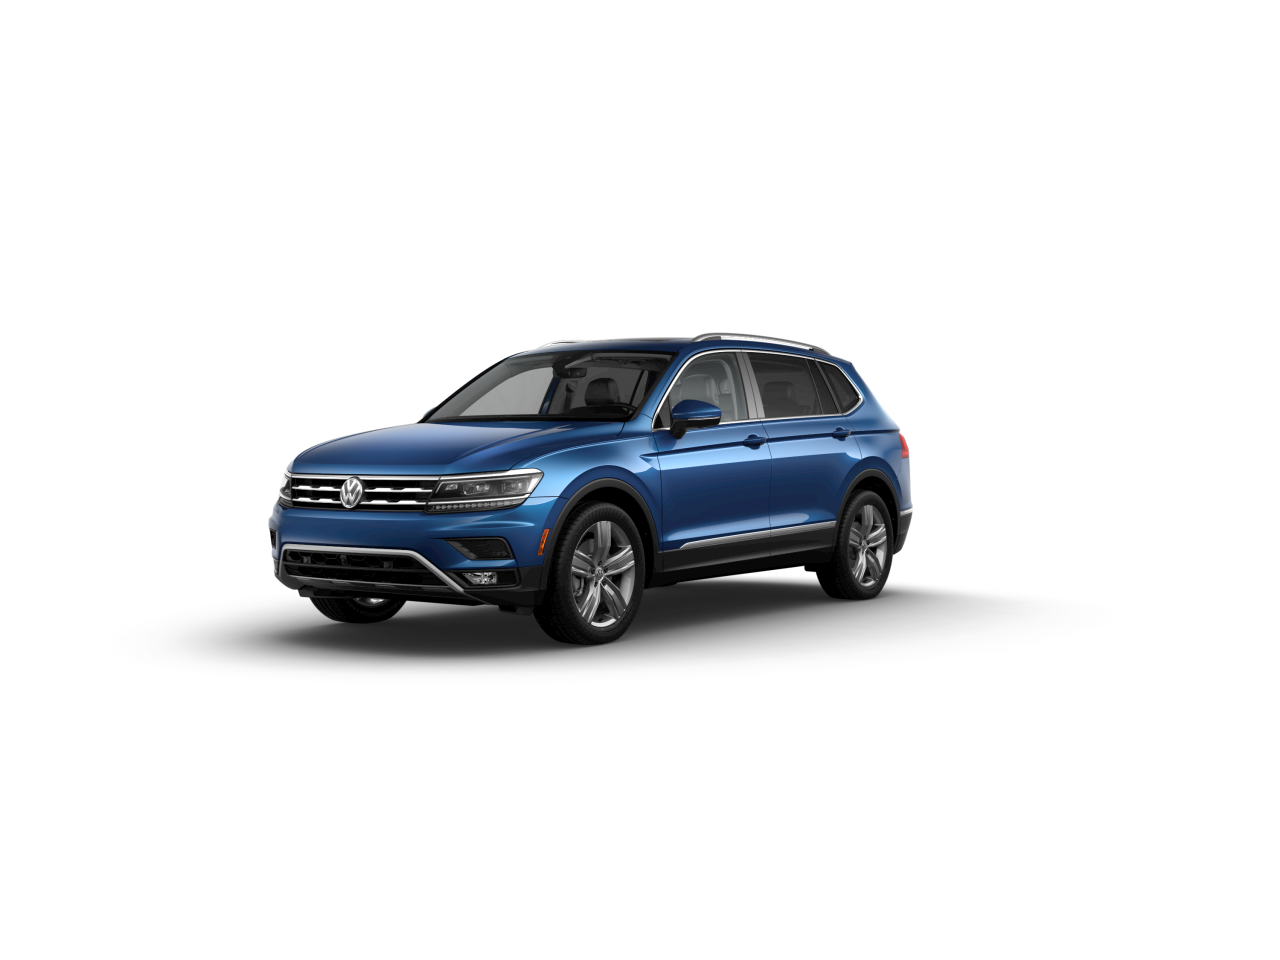 2019 Volkswagen Tiguan Silk Blue Metallic O Elgin Vw